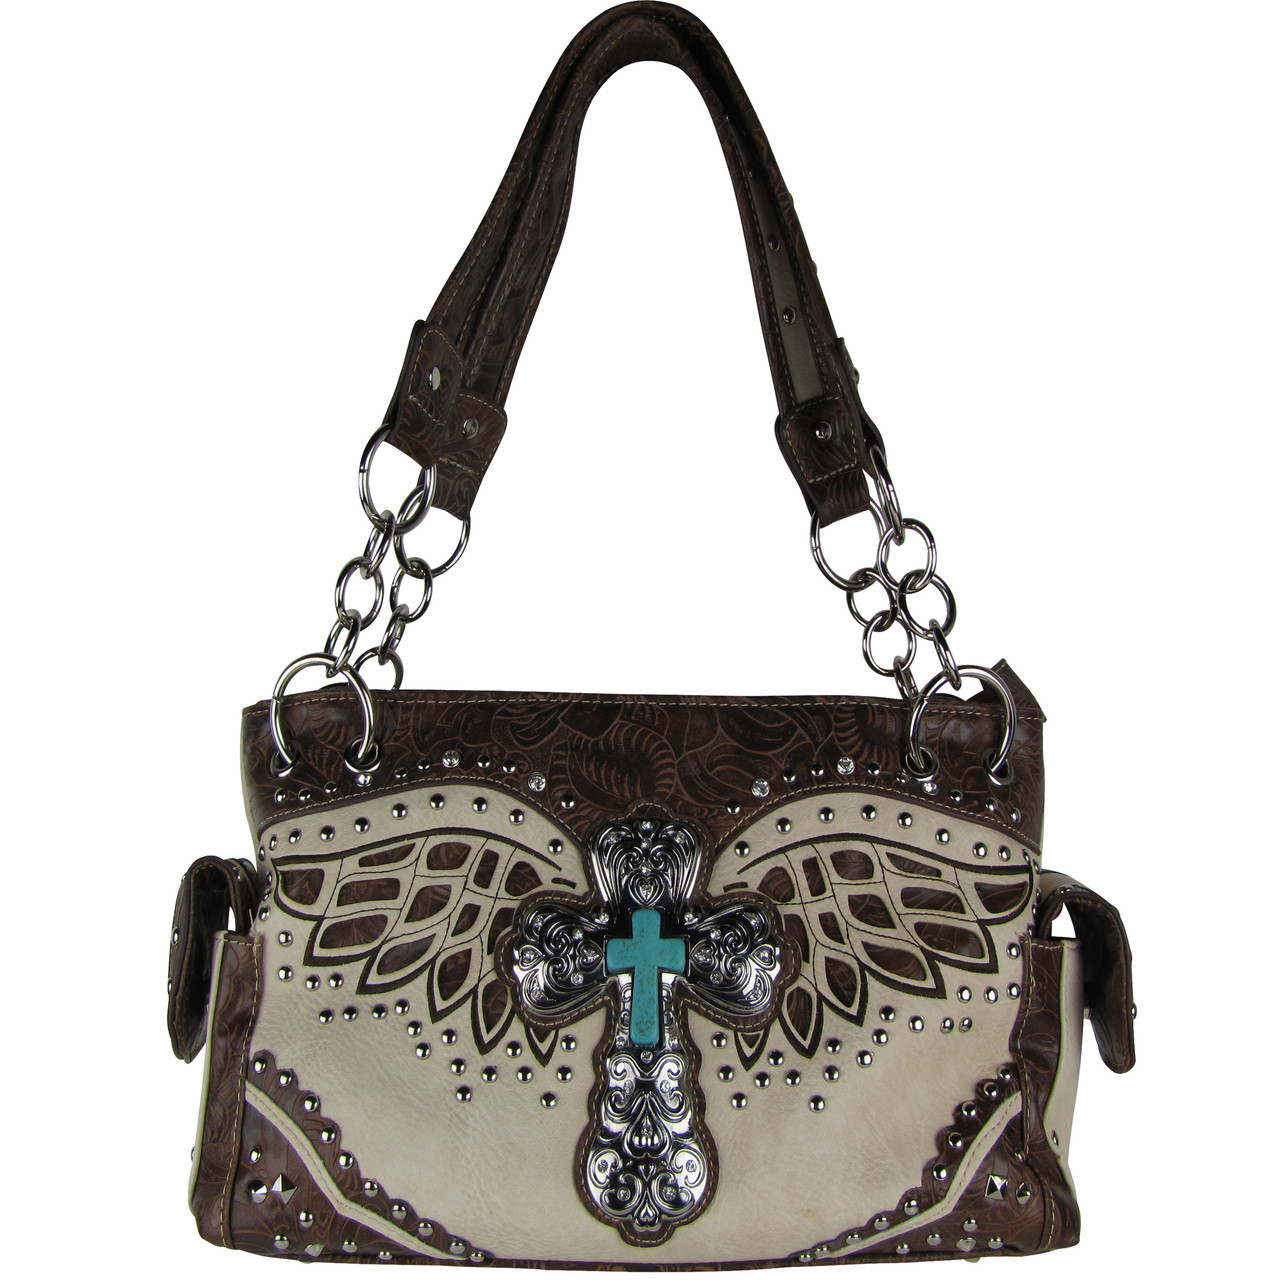 BEIGE WESTERN CROSS WITH WINGS LOOK SHOULDER HANDBAG HB1-52LCRBEI